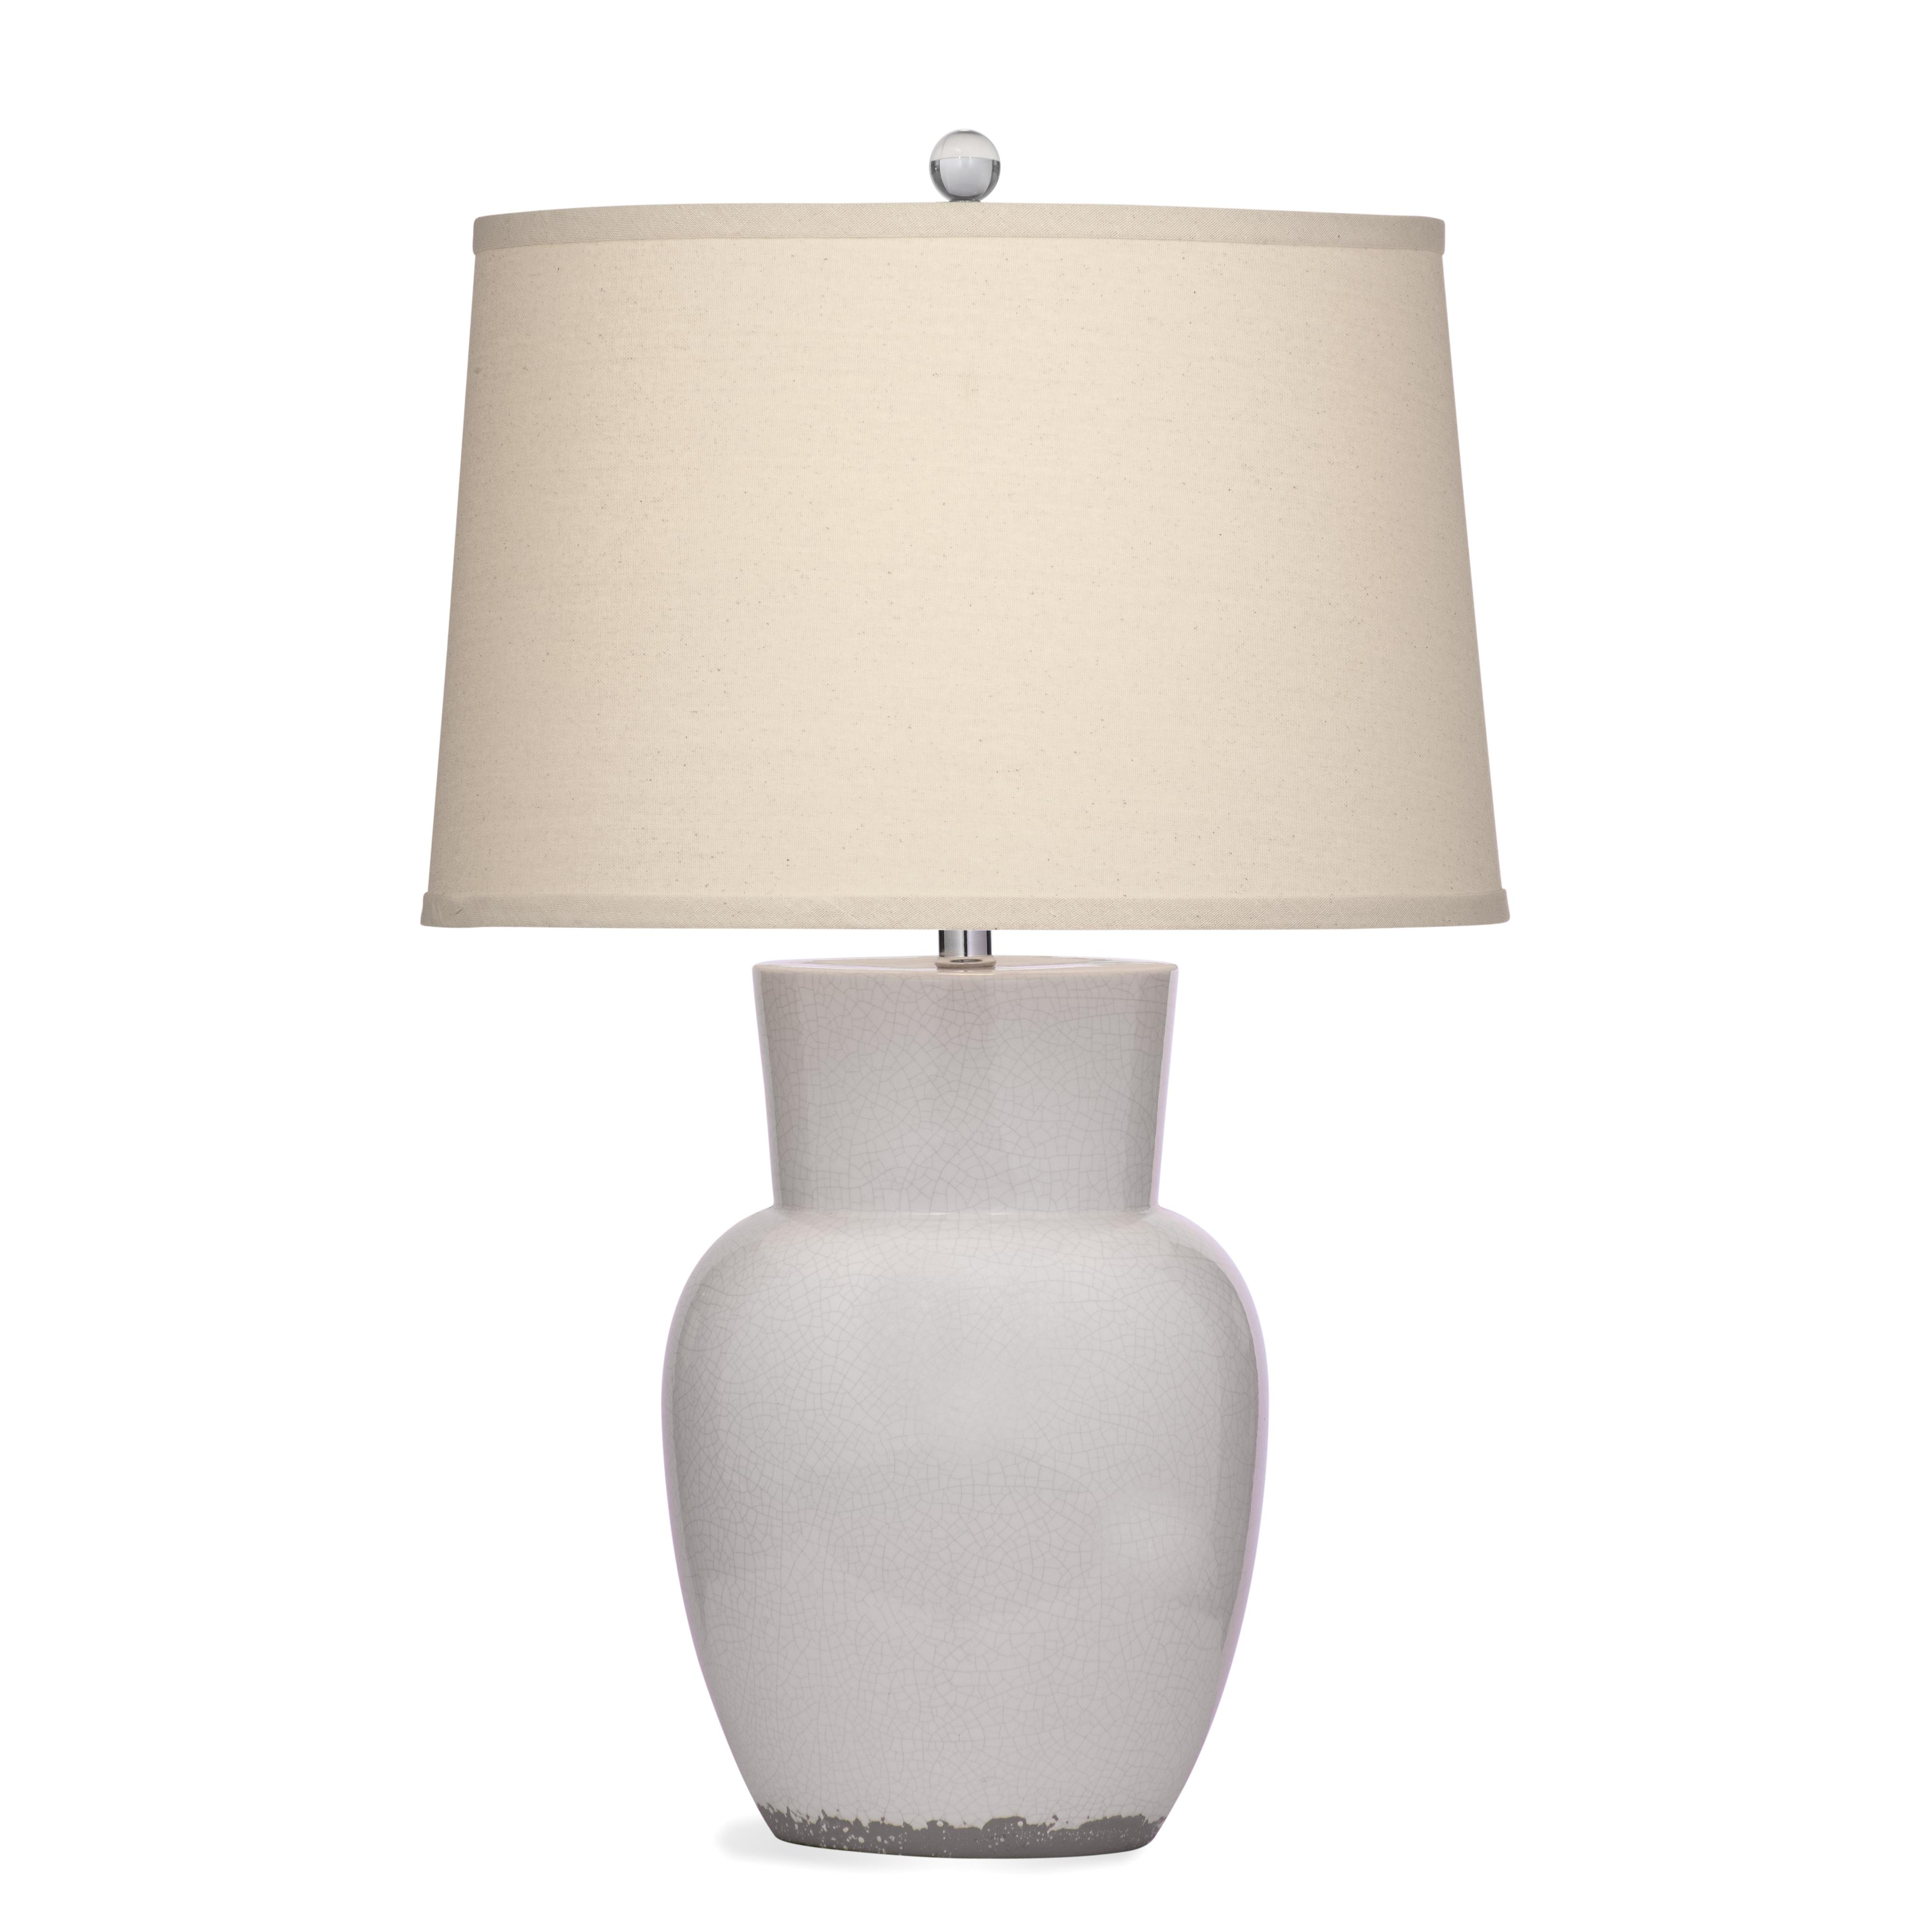 Belgian Luxe Roswell Table Lamp by Bassett Mirror at Alison Craig Home Furnishings